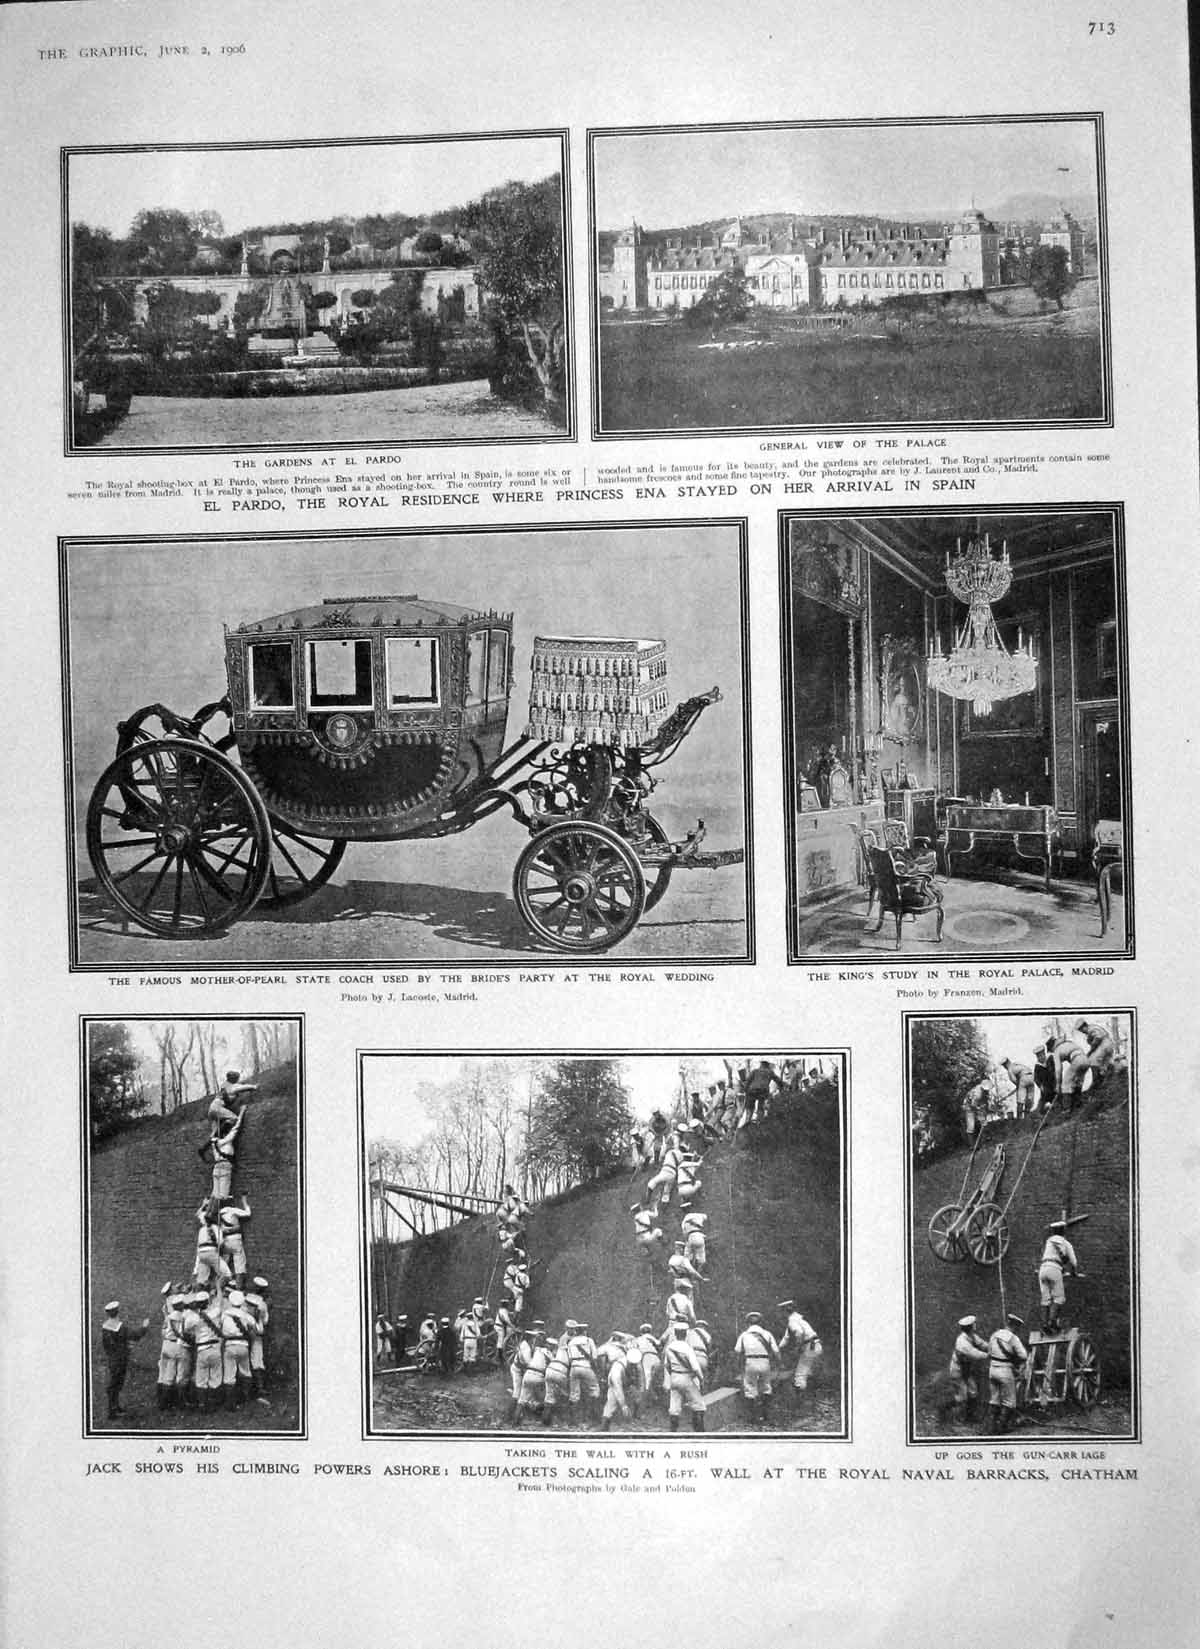 Old-Antique-Print-1906-Bluejackets-Chatham-Palace-Madrid-Goodwyn-Vaughan-20th thumbnail 1